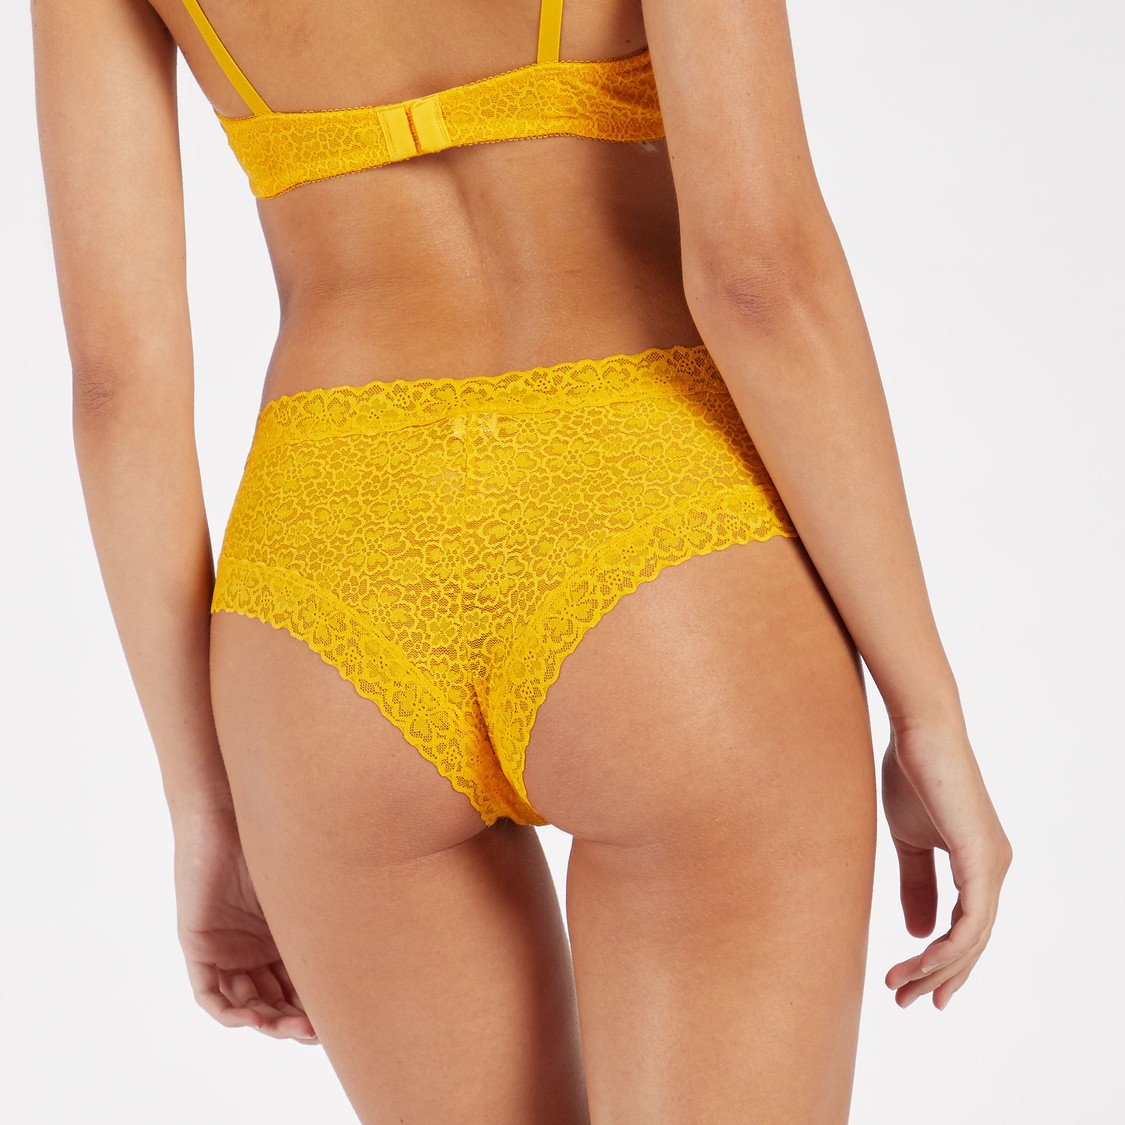 Floral Embroidered Lace Bikini Briefs with Bow Detail